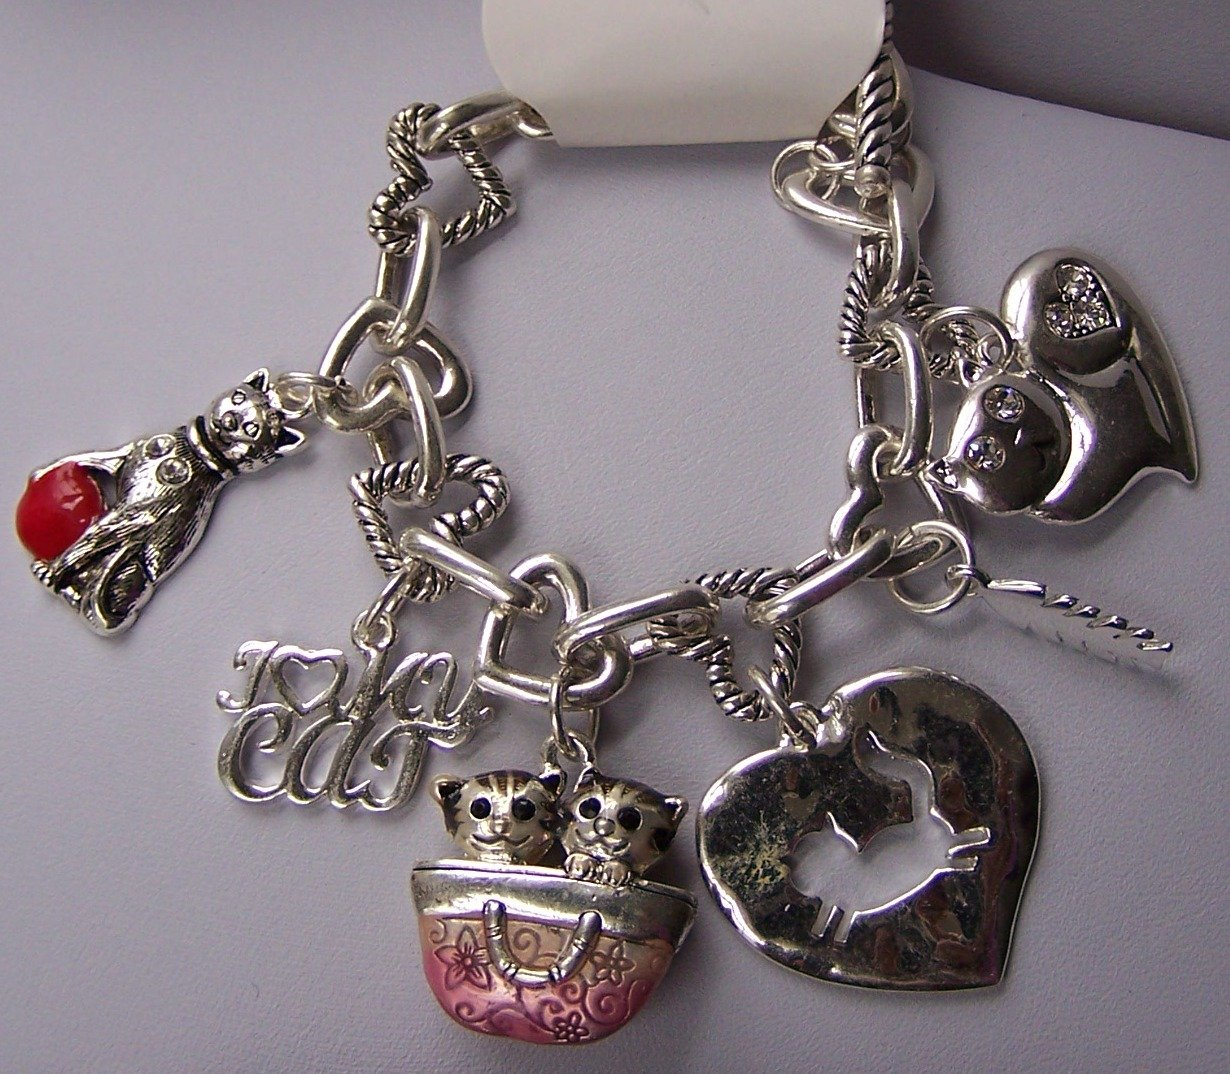 I Love Kitty Cat Kitten Heart Love Charm Bracelet